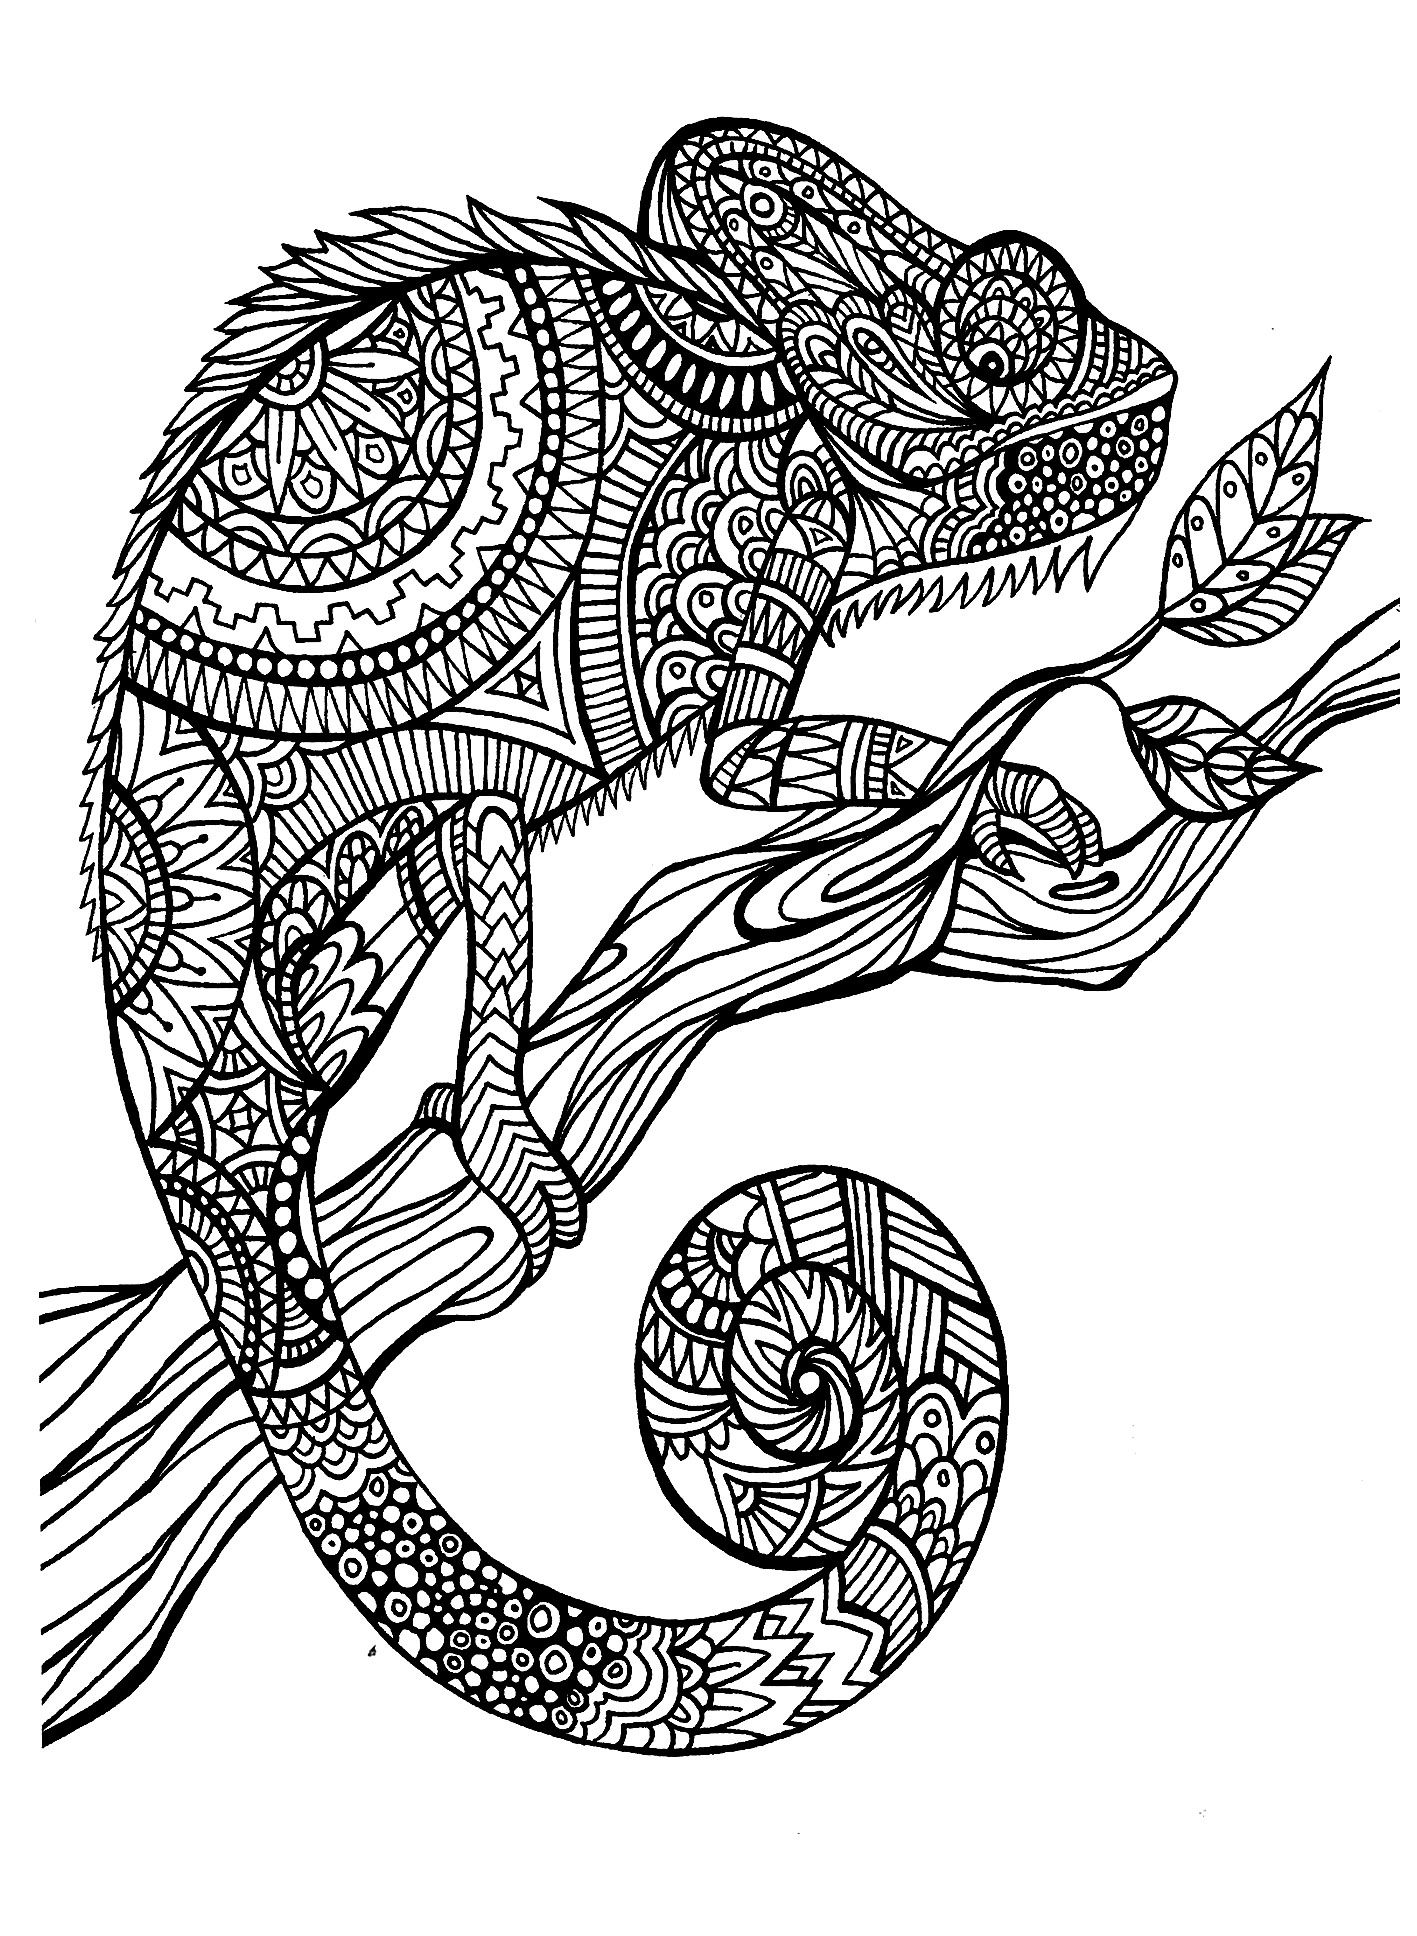 Coloring pictures for adults - Free Coloring Page Coloring Adult Cameleon Patterns A Magnificien Cameleon To Color